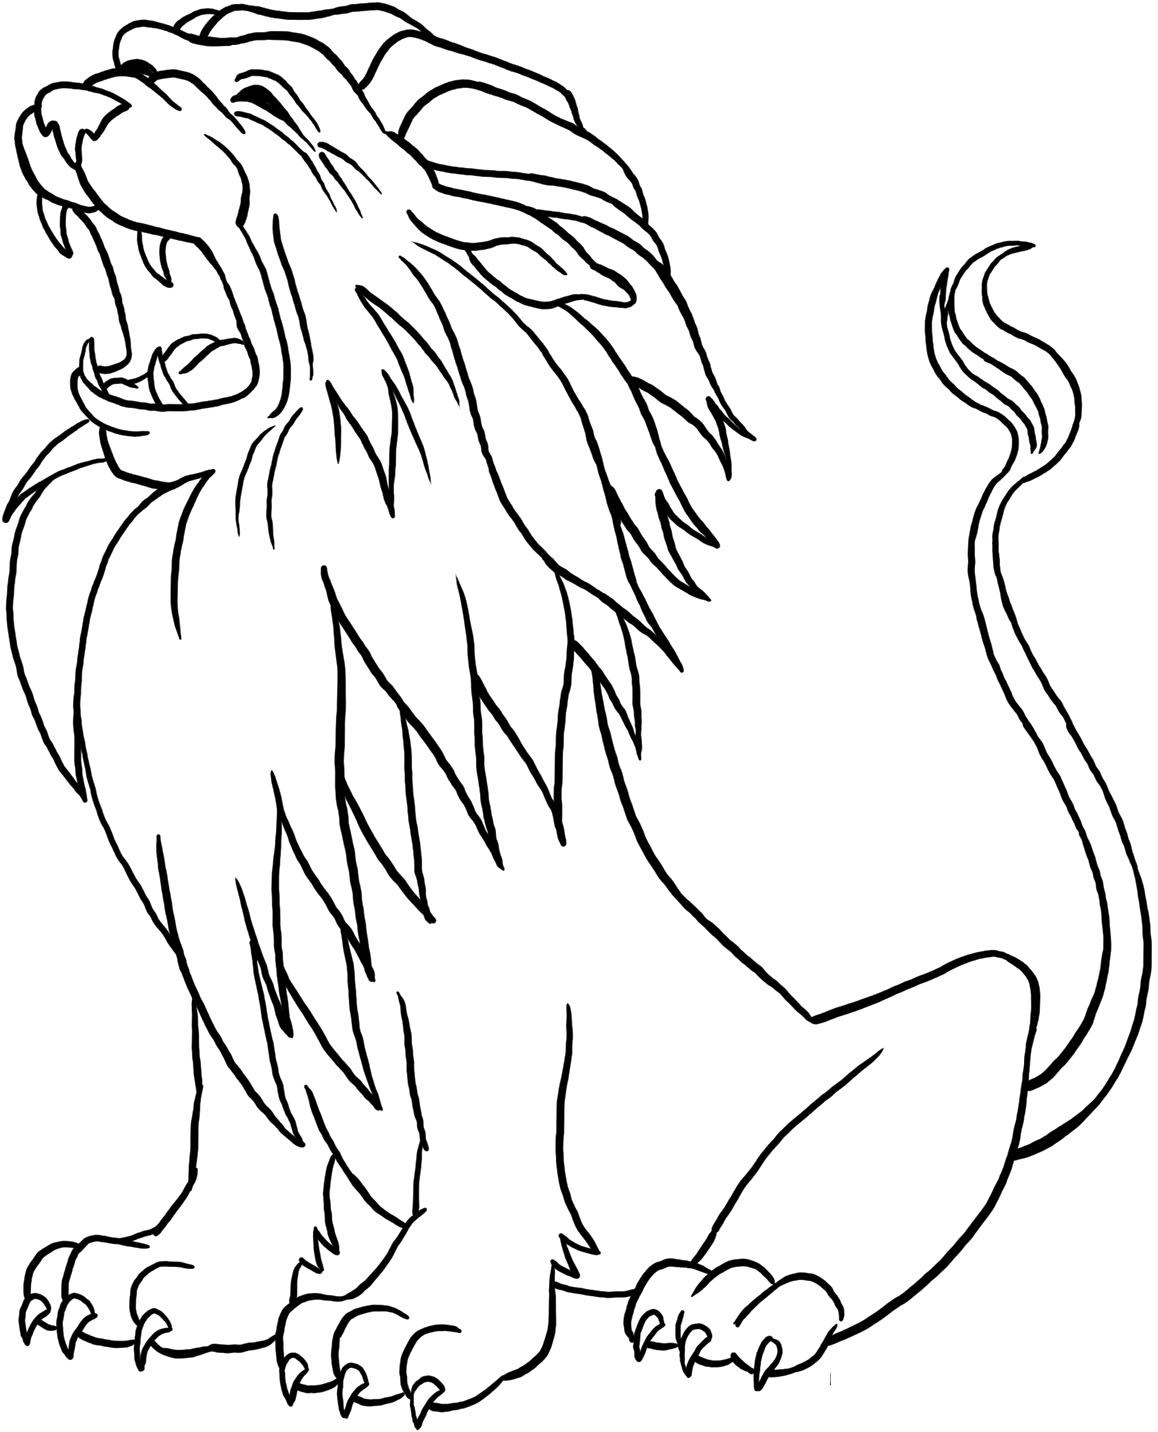 1158x1432 Best Roaring Lion Coloring Pages Free Printable